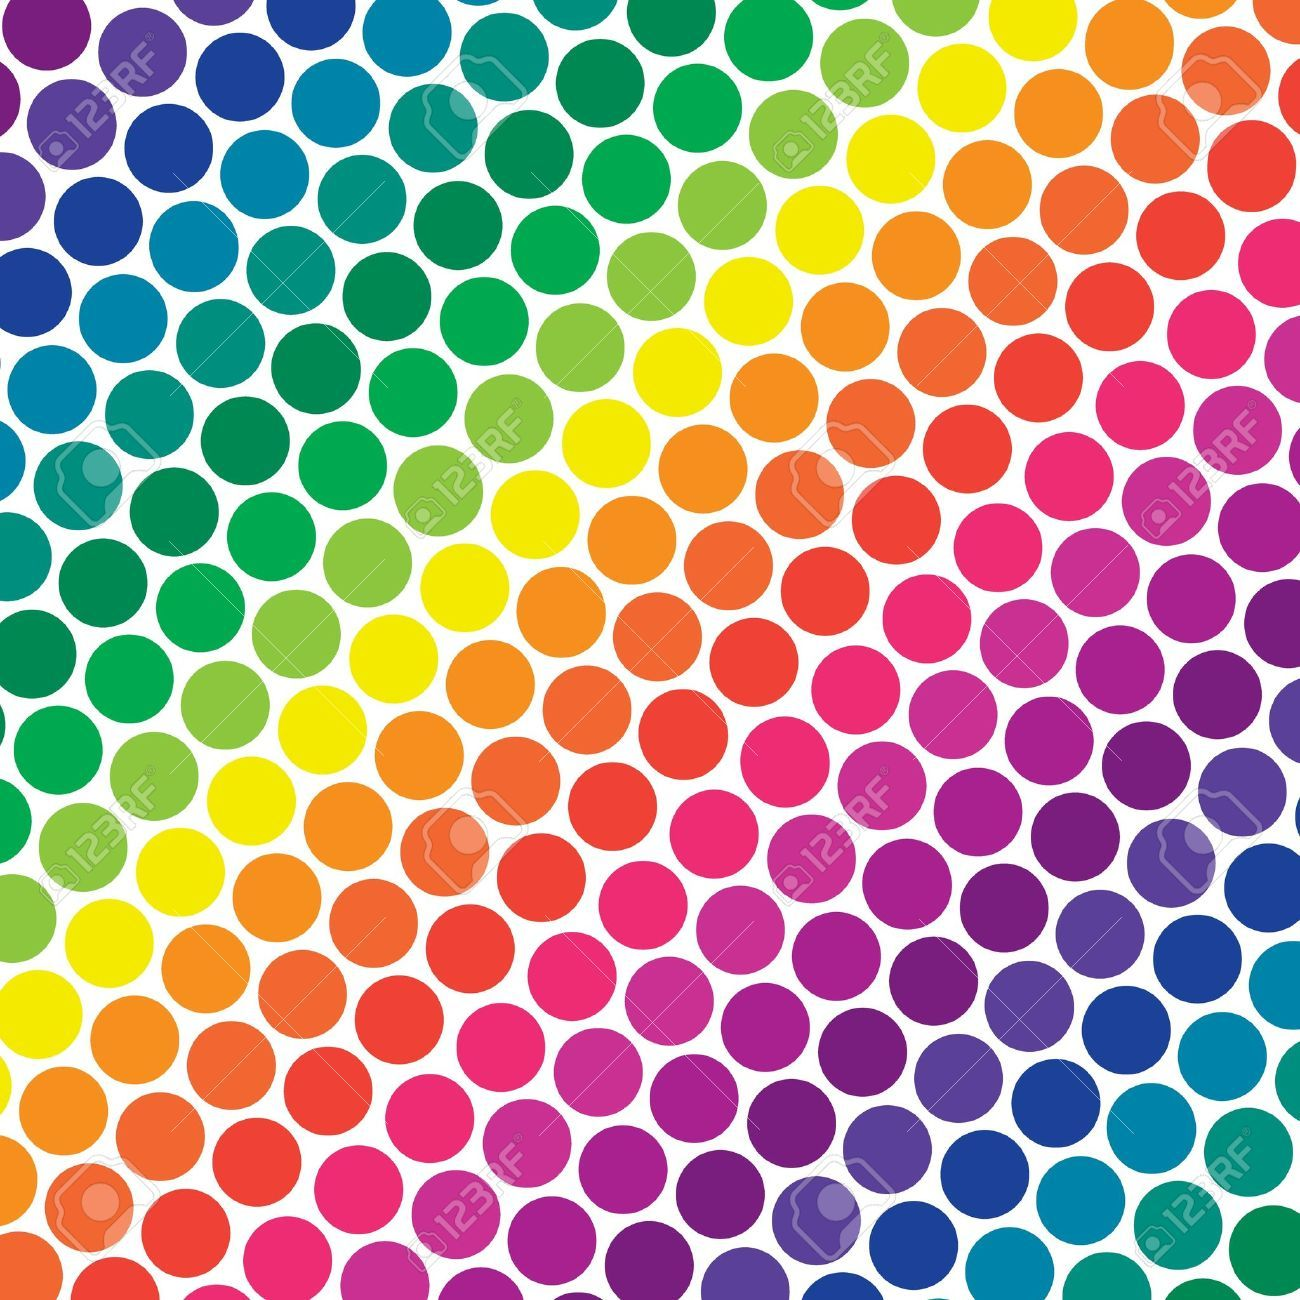 Illustration Of Bright Rainbow Colored Polka Dots In ...